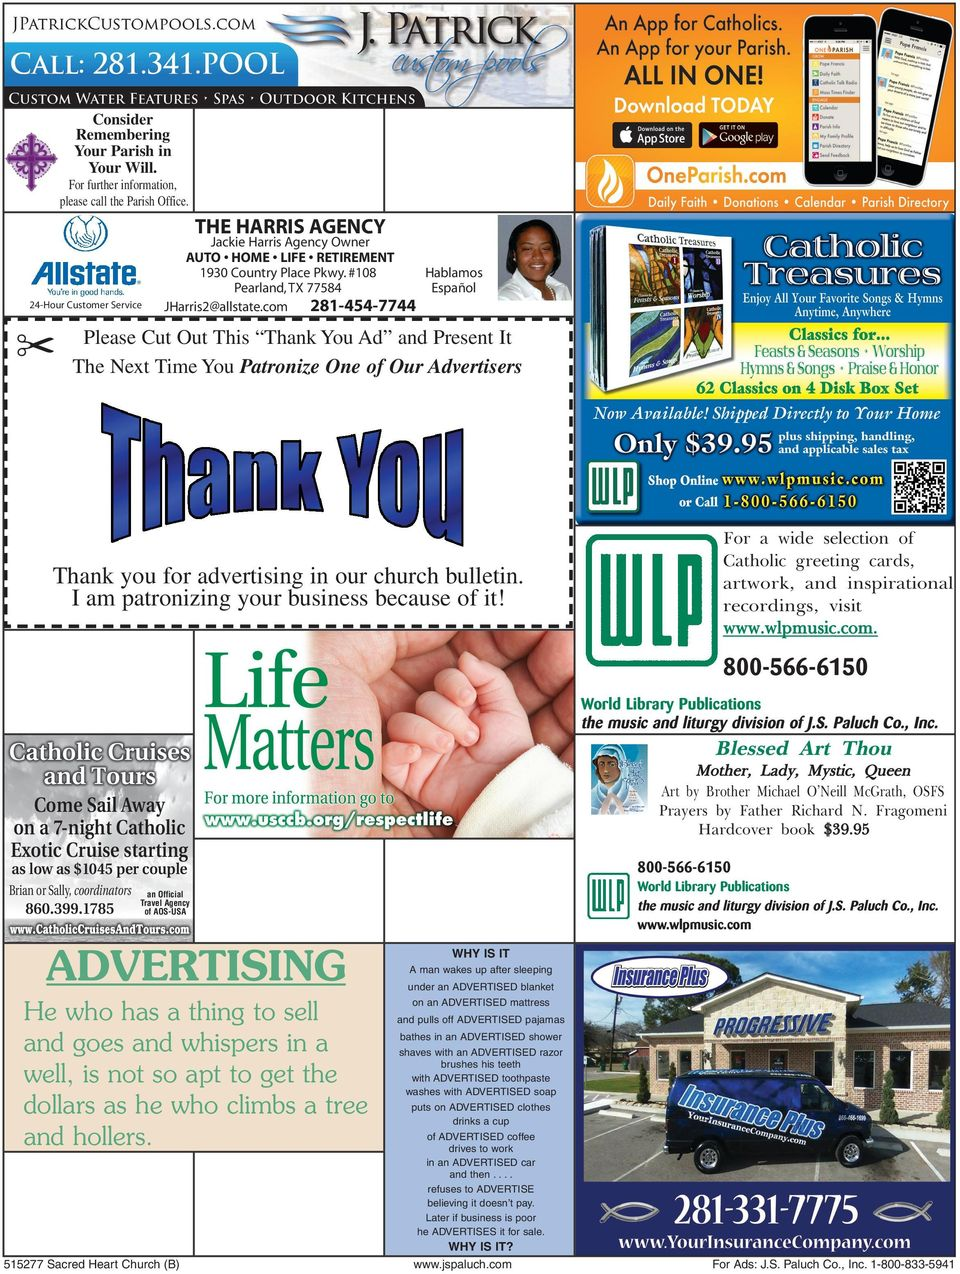 com 281-454-7744 Please Cut Out This Thank You Ad and Present It The Next Time You Patronize One of Our Advertisers Thank you for advertising in our church bulletin.